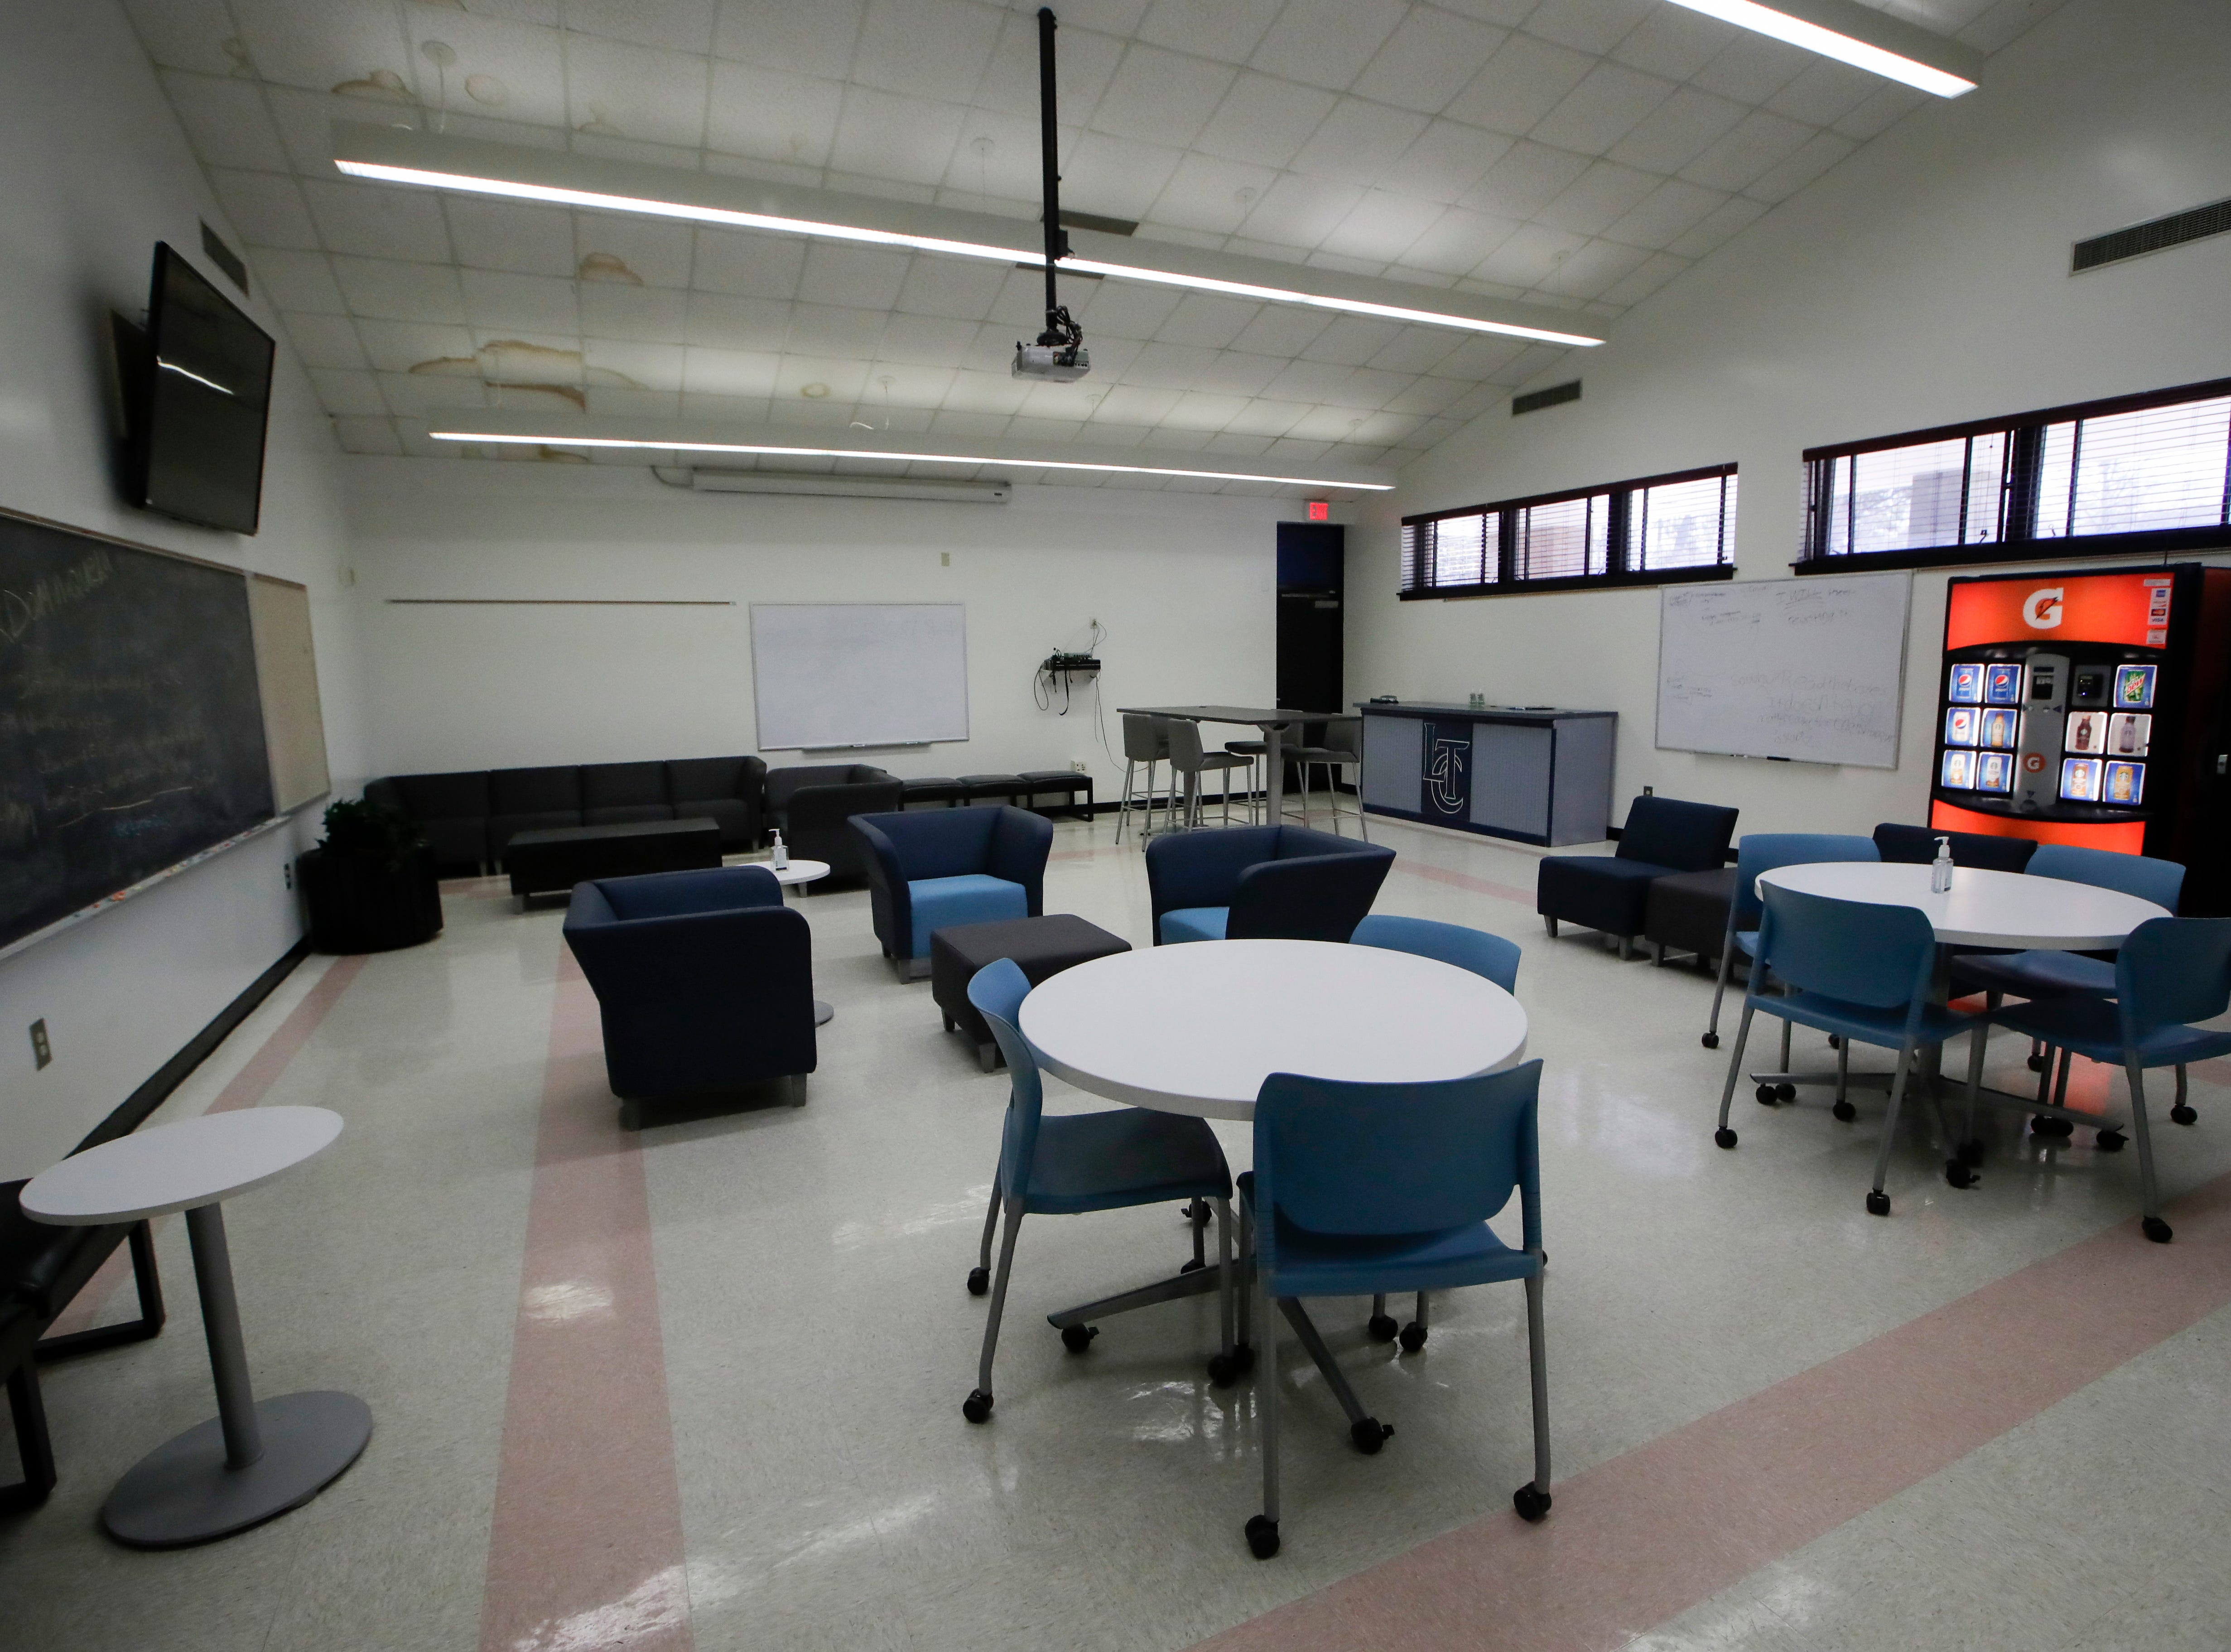 Some rooms have been repurposed to act as student lounges at Lively Technical Center which has been approved by the Leon County School Board to change it's name to Lively Technical College.